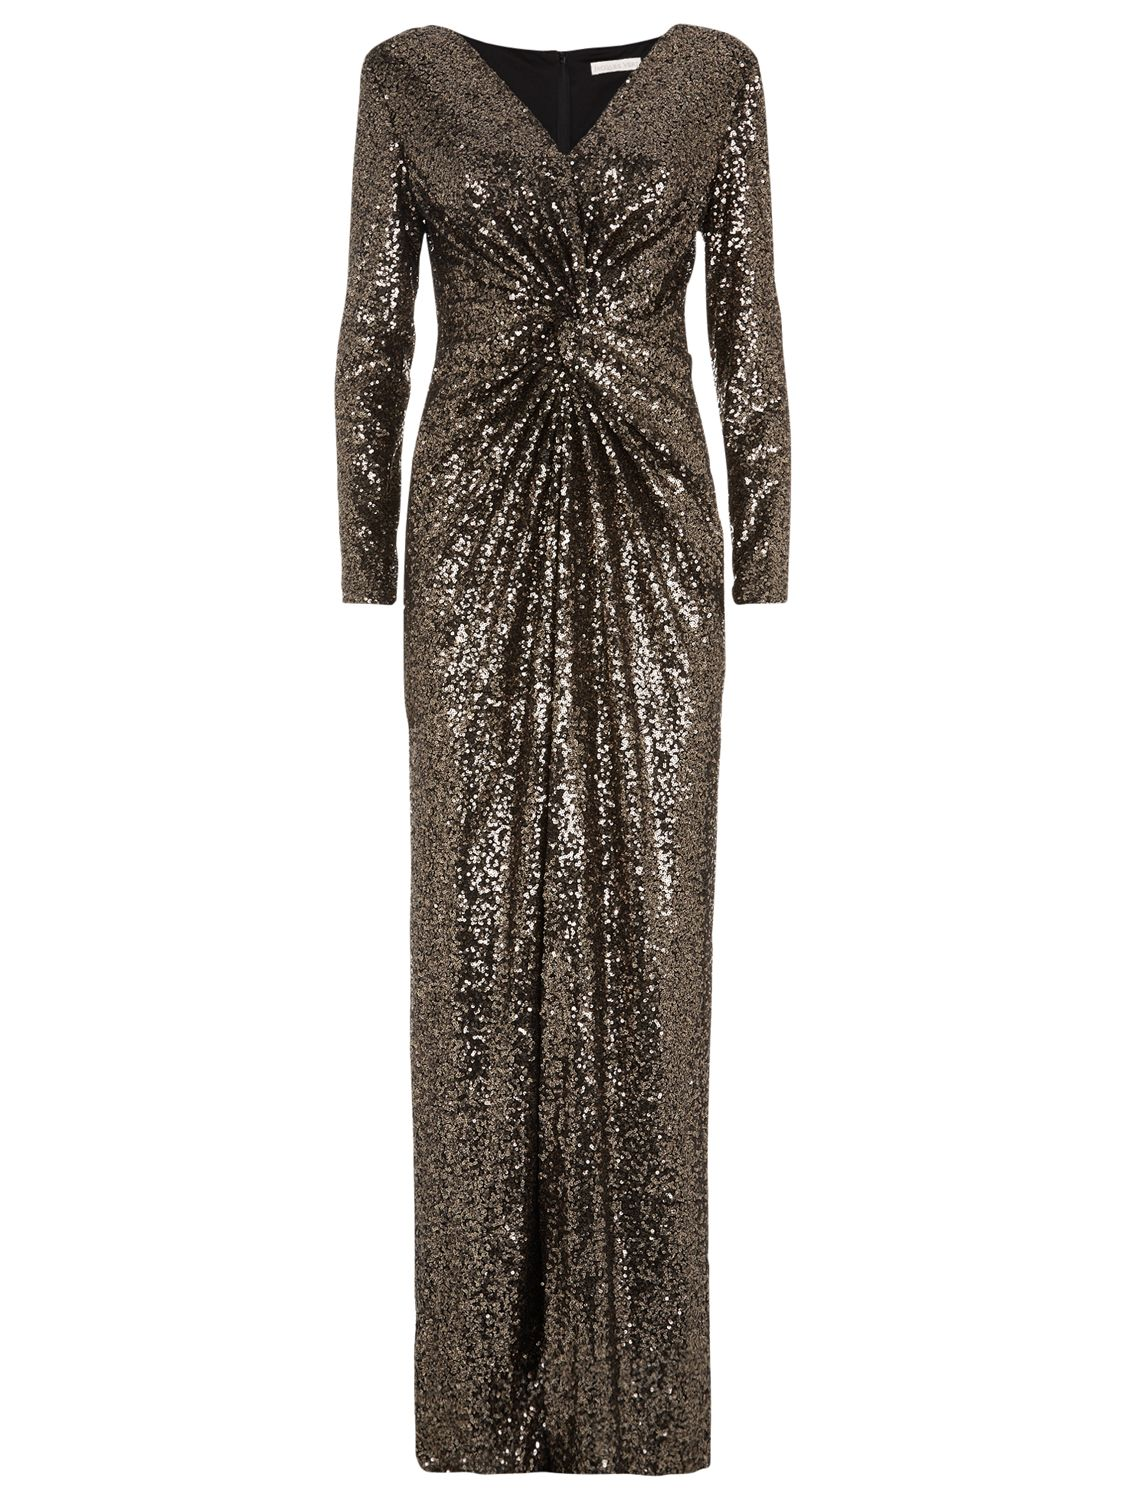 jacques vert lorcan mullany sequin gown, jacques, vert, lorcan, mullany, sequin, gown, jacques vert, amethyst|gold|gold|gold|amethyst|amethyst, 18|16|14|12|16|14, clearance, womenswear offers, womens dresses offers, new years party offers, special offers, women, plus size, inactive womenswear, new reductions, womens dresses, party outfits, evening gowns, eveningwear offers, 1691052